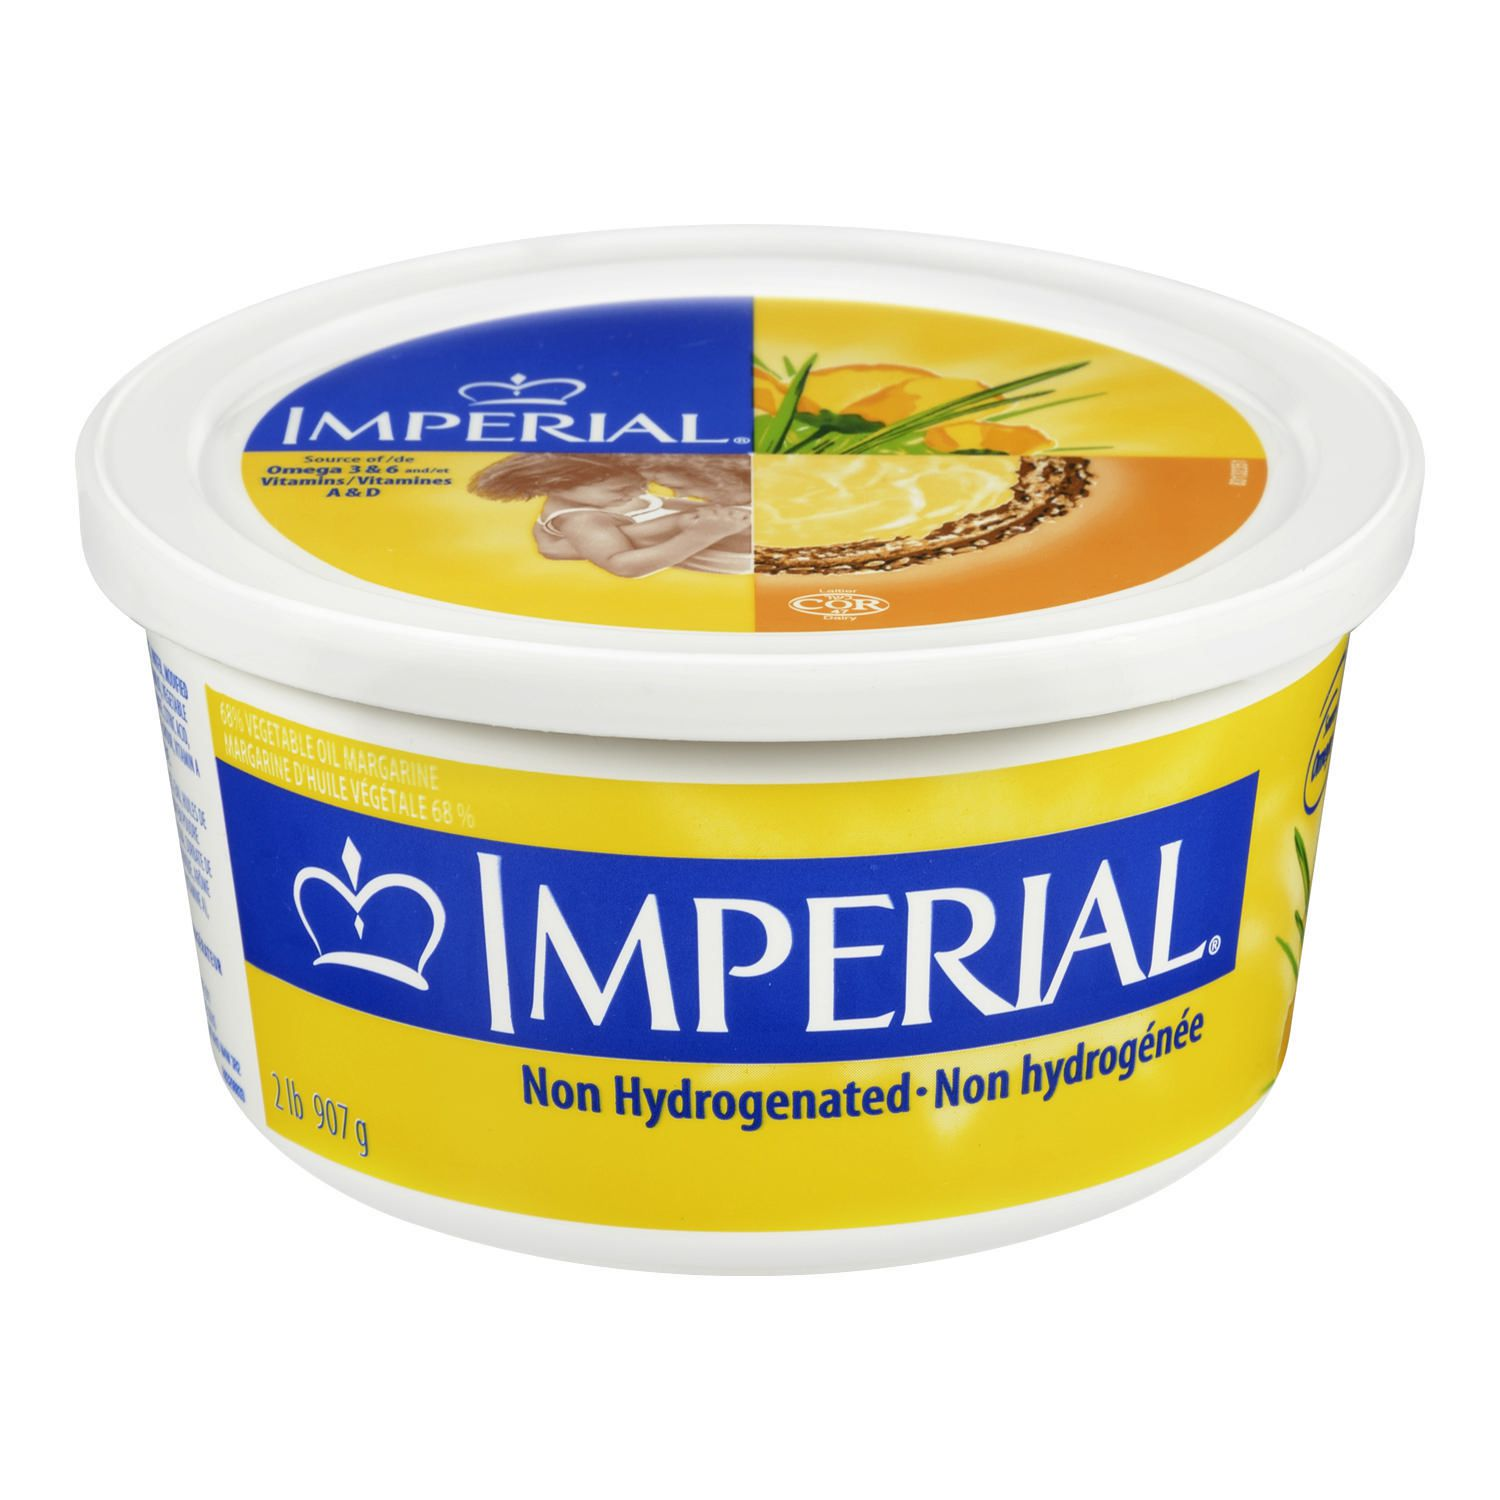 Related Keywords & Suggestions for imperial margarine